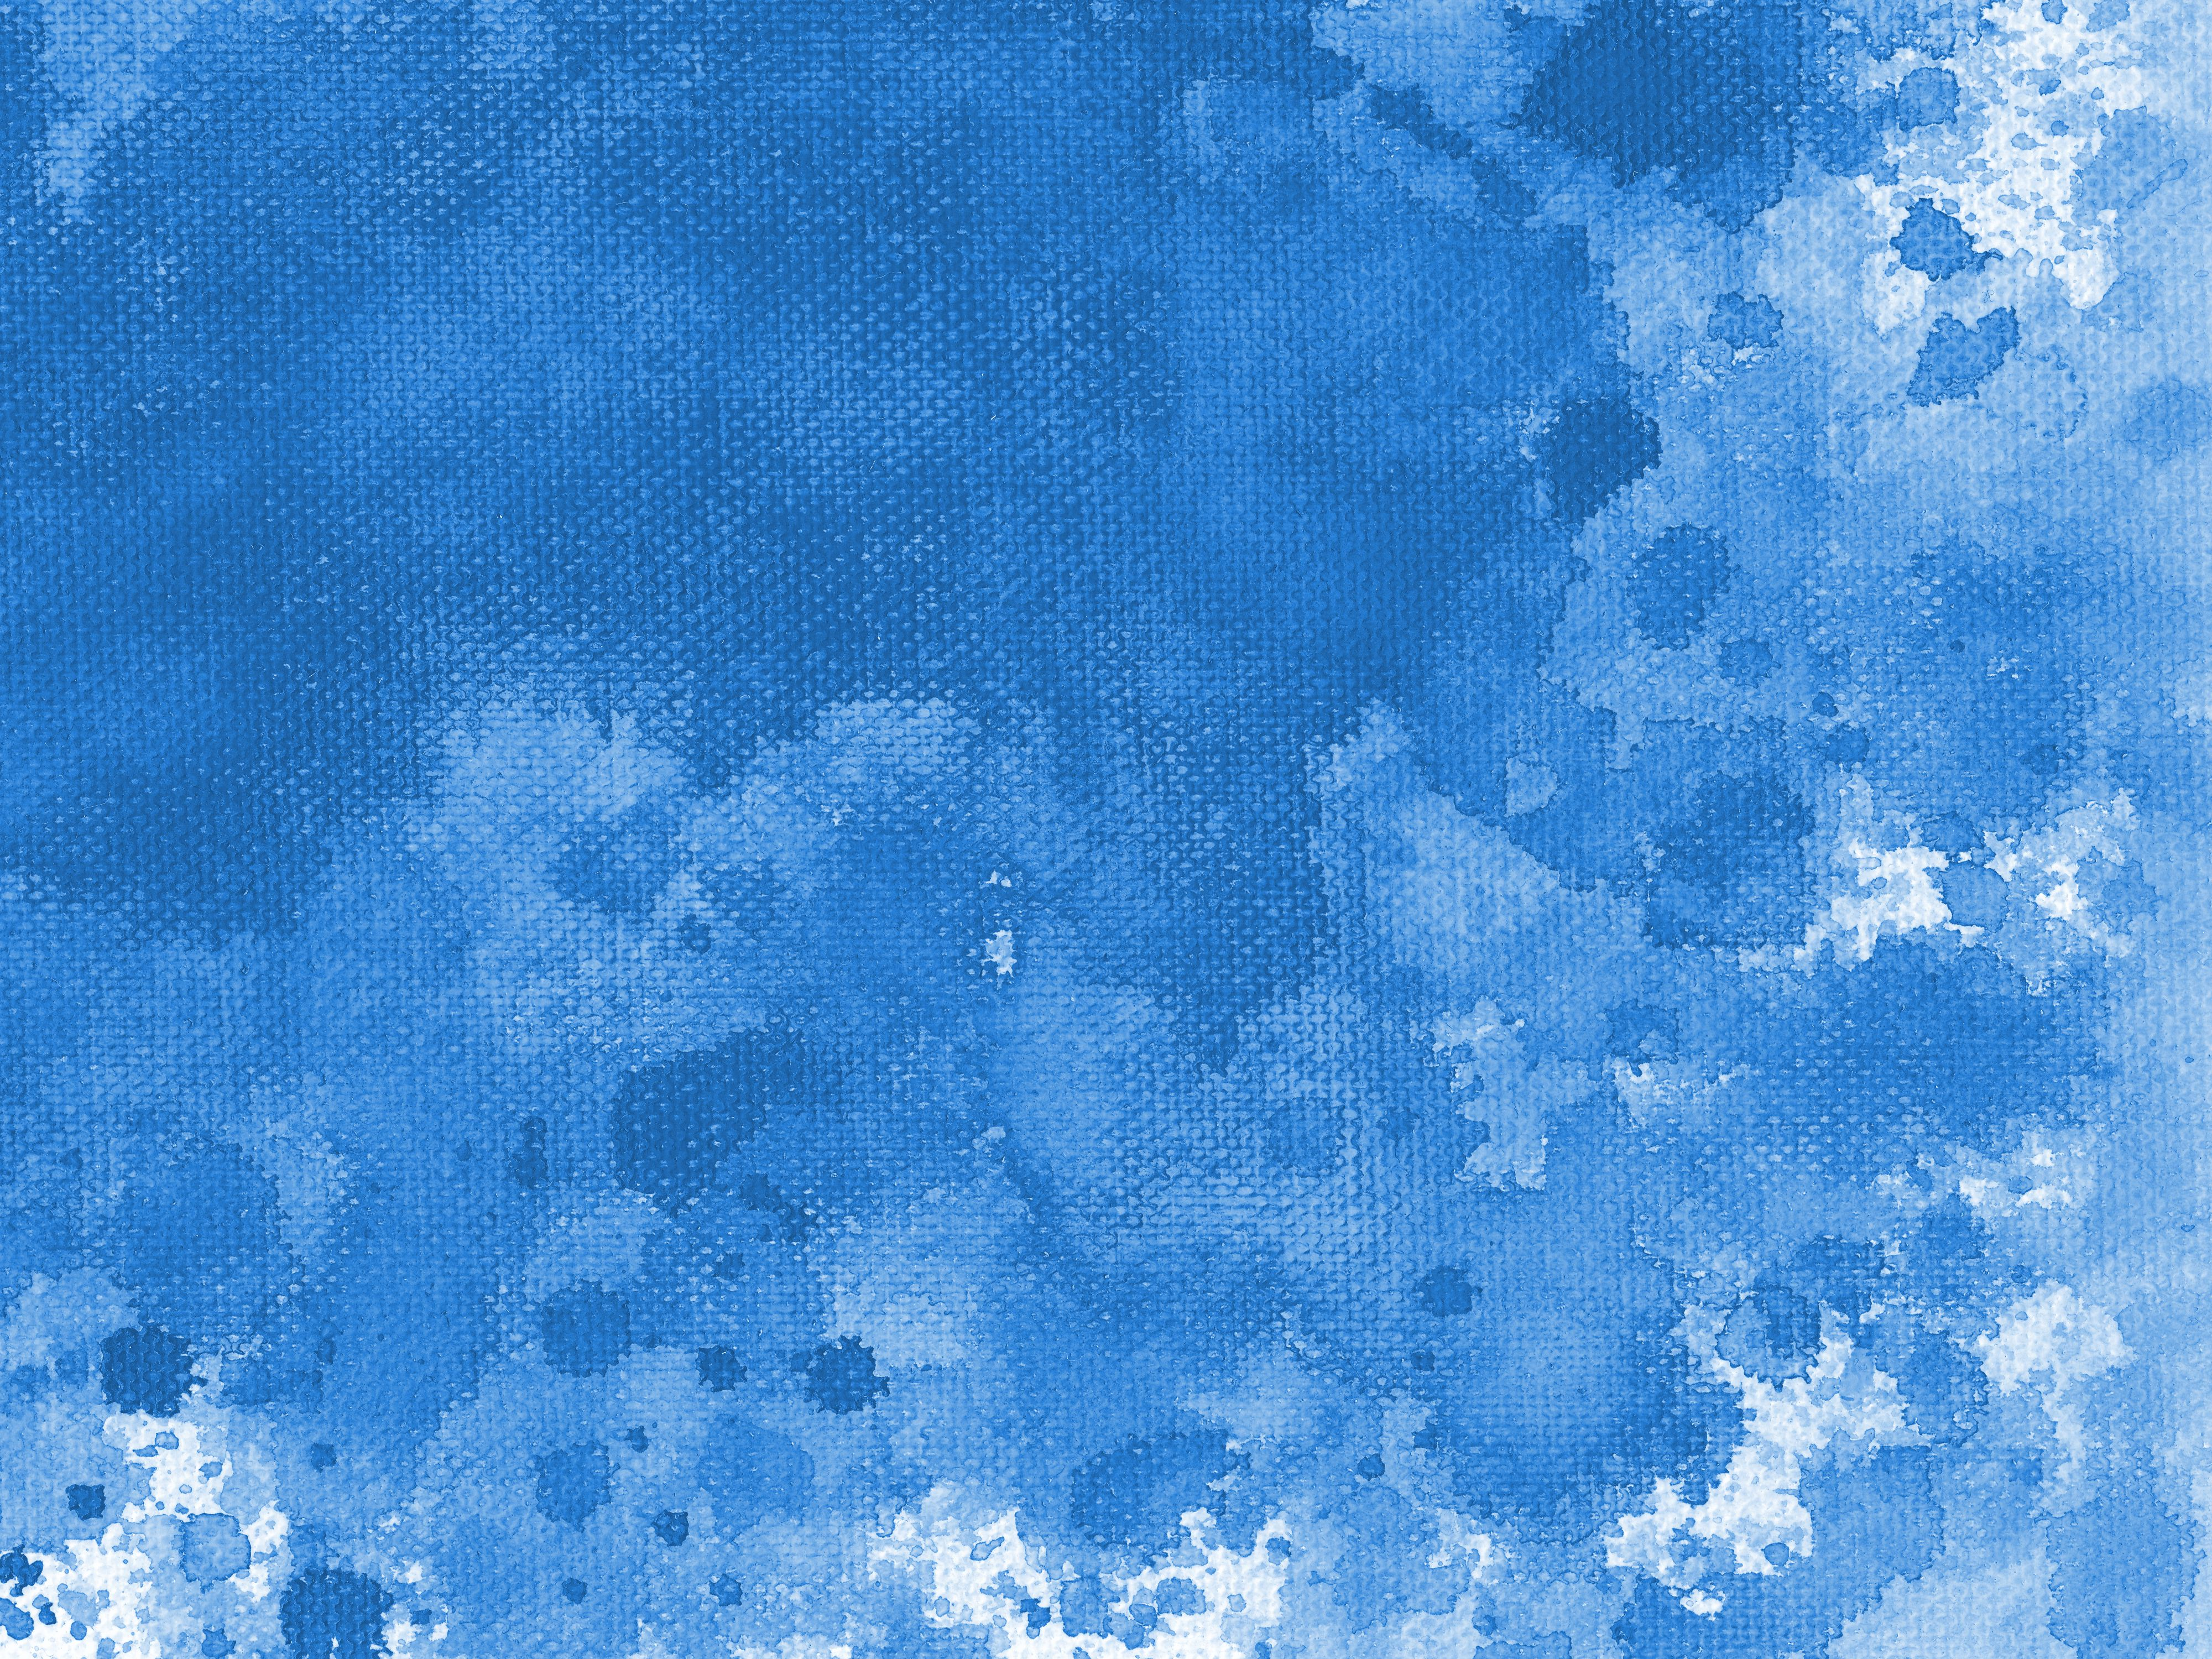 9 blue watercolor splash on canvas background  jpg